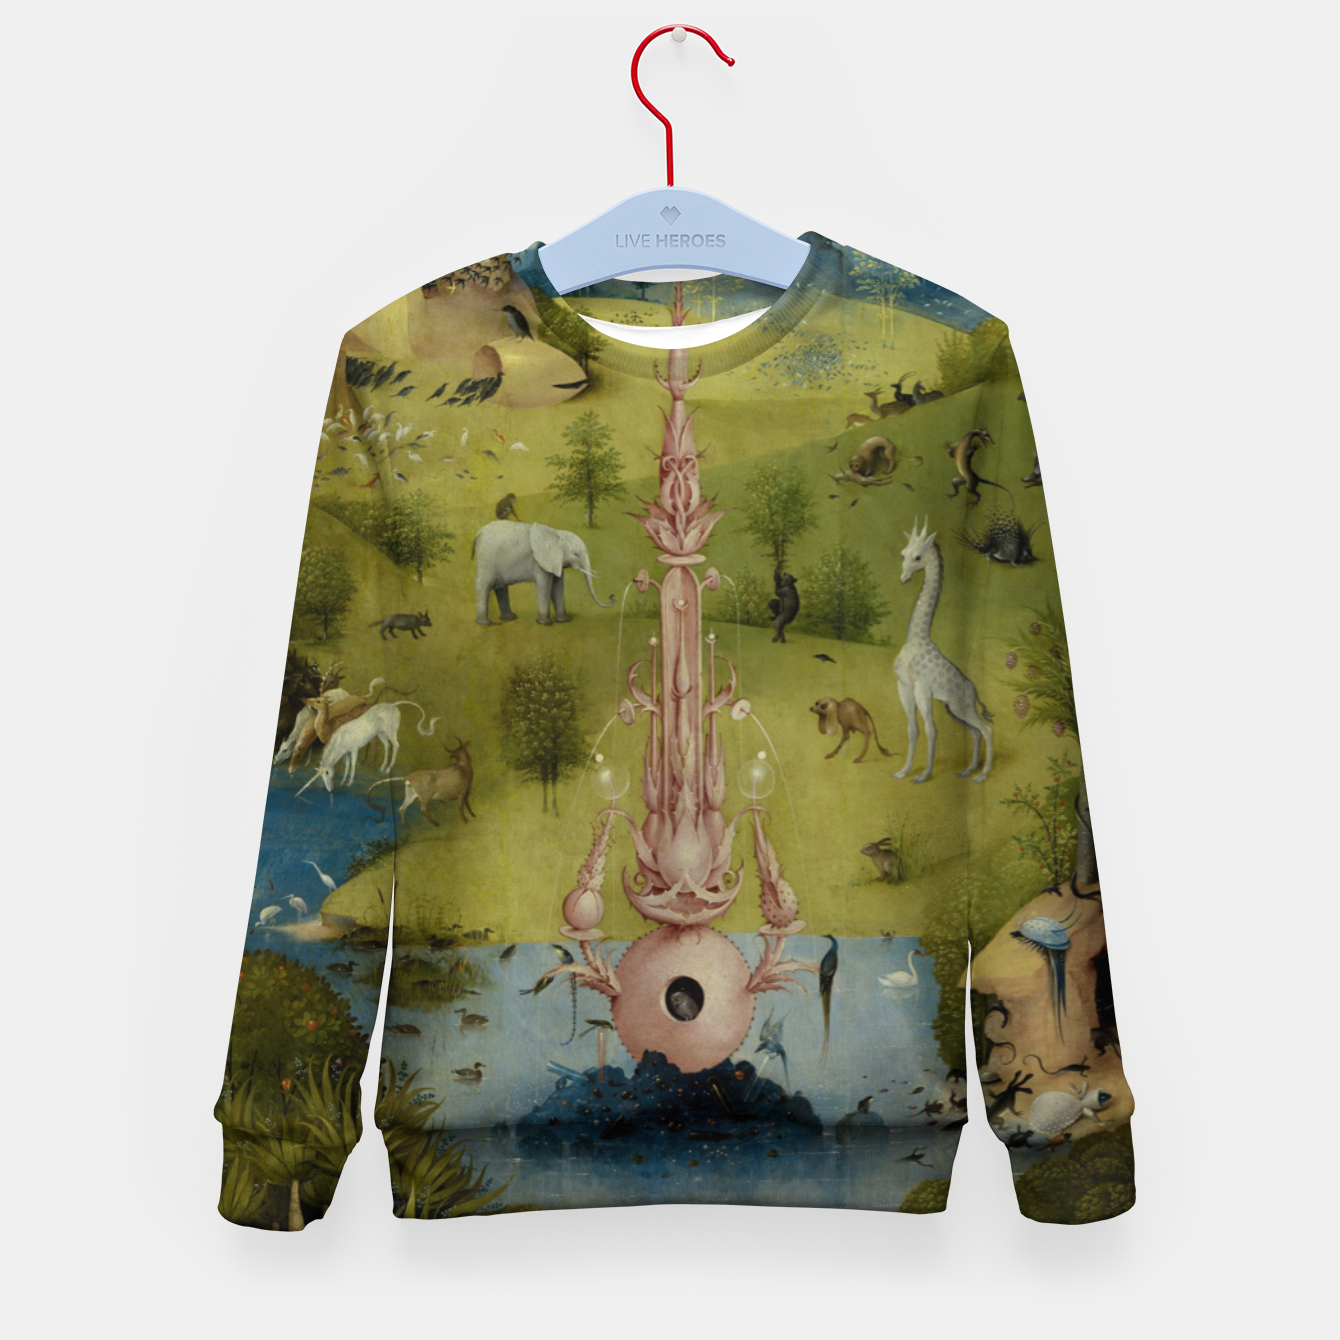 Zdjęcie Fashion and Decor items of Hieronymus Bosch painting, Eden from the triptych Garden of Earthly Delights Kid's sweater - Live Heroes